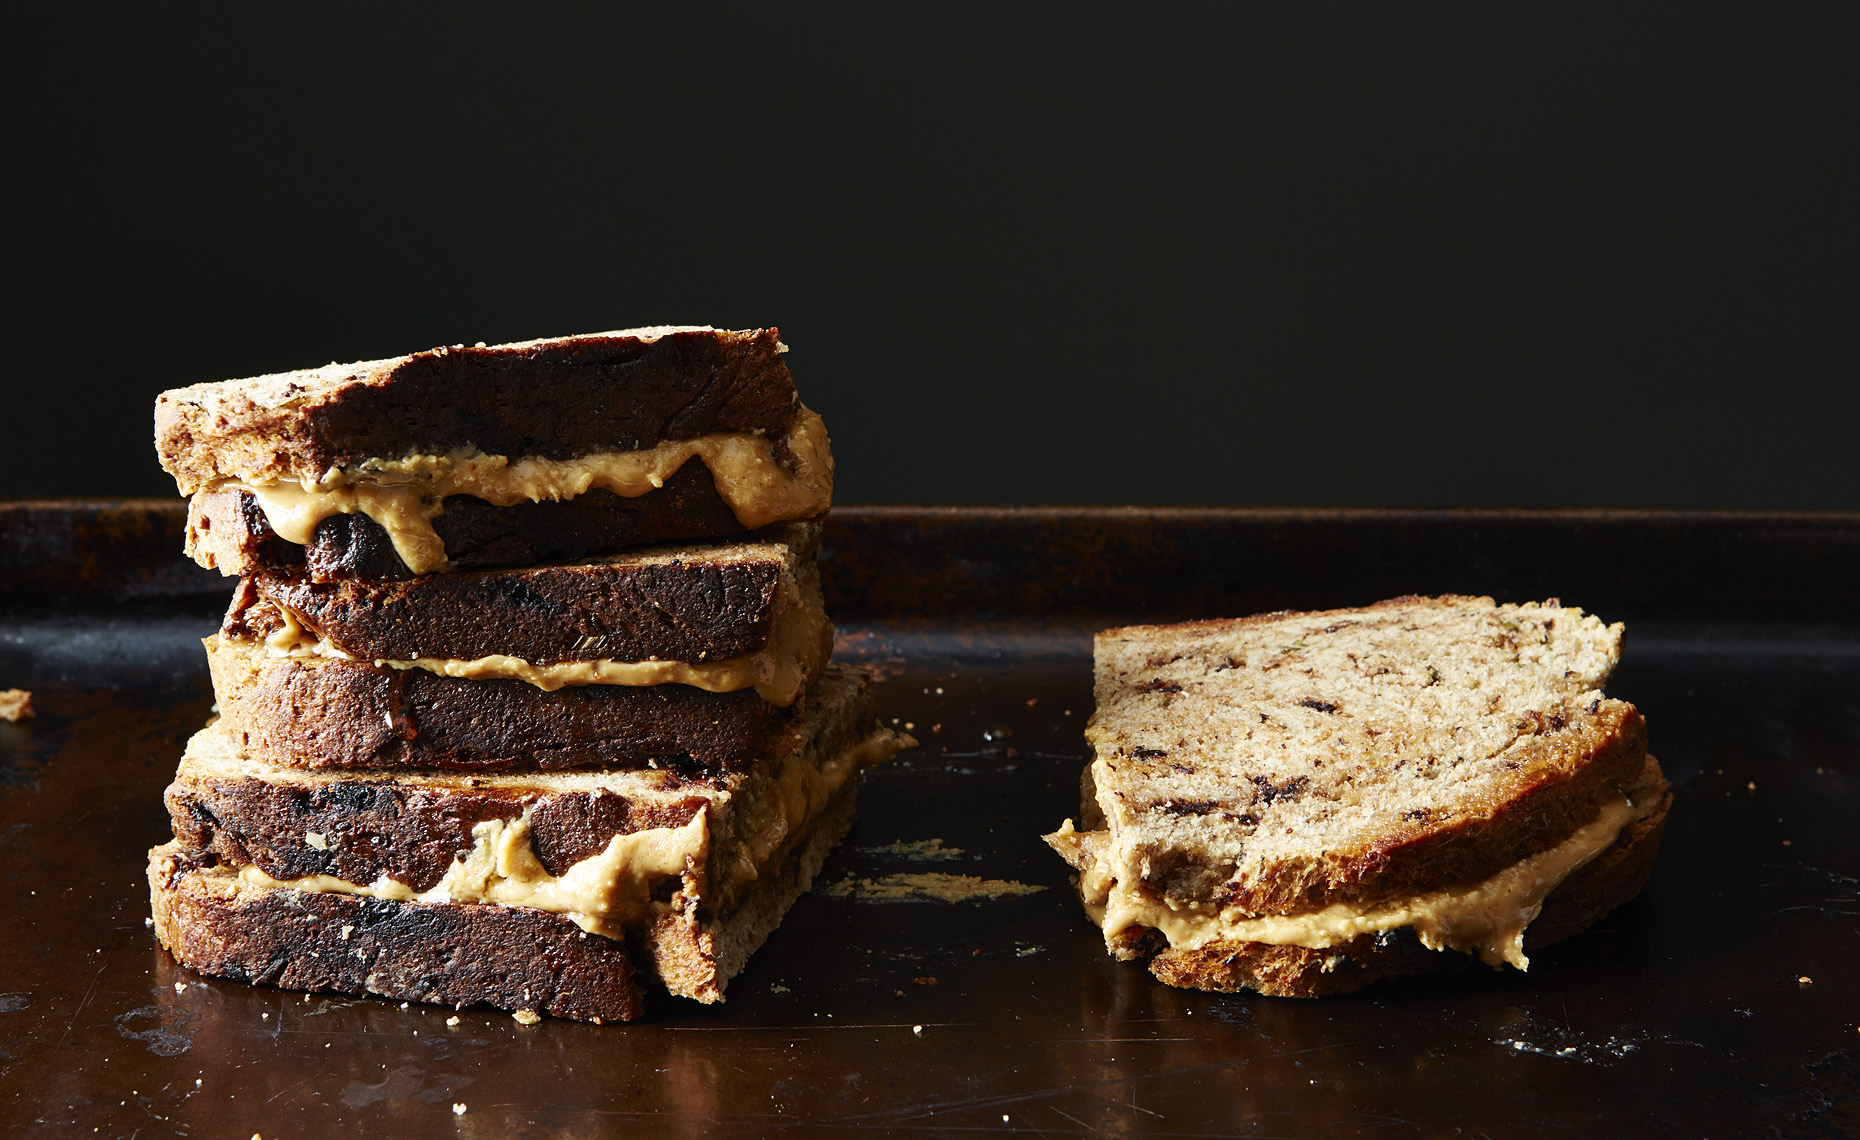 046_2015-0106_peanut-butter-honey-sandwich-rosemary-chocolate-bread-166_2